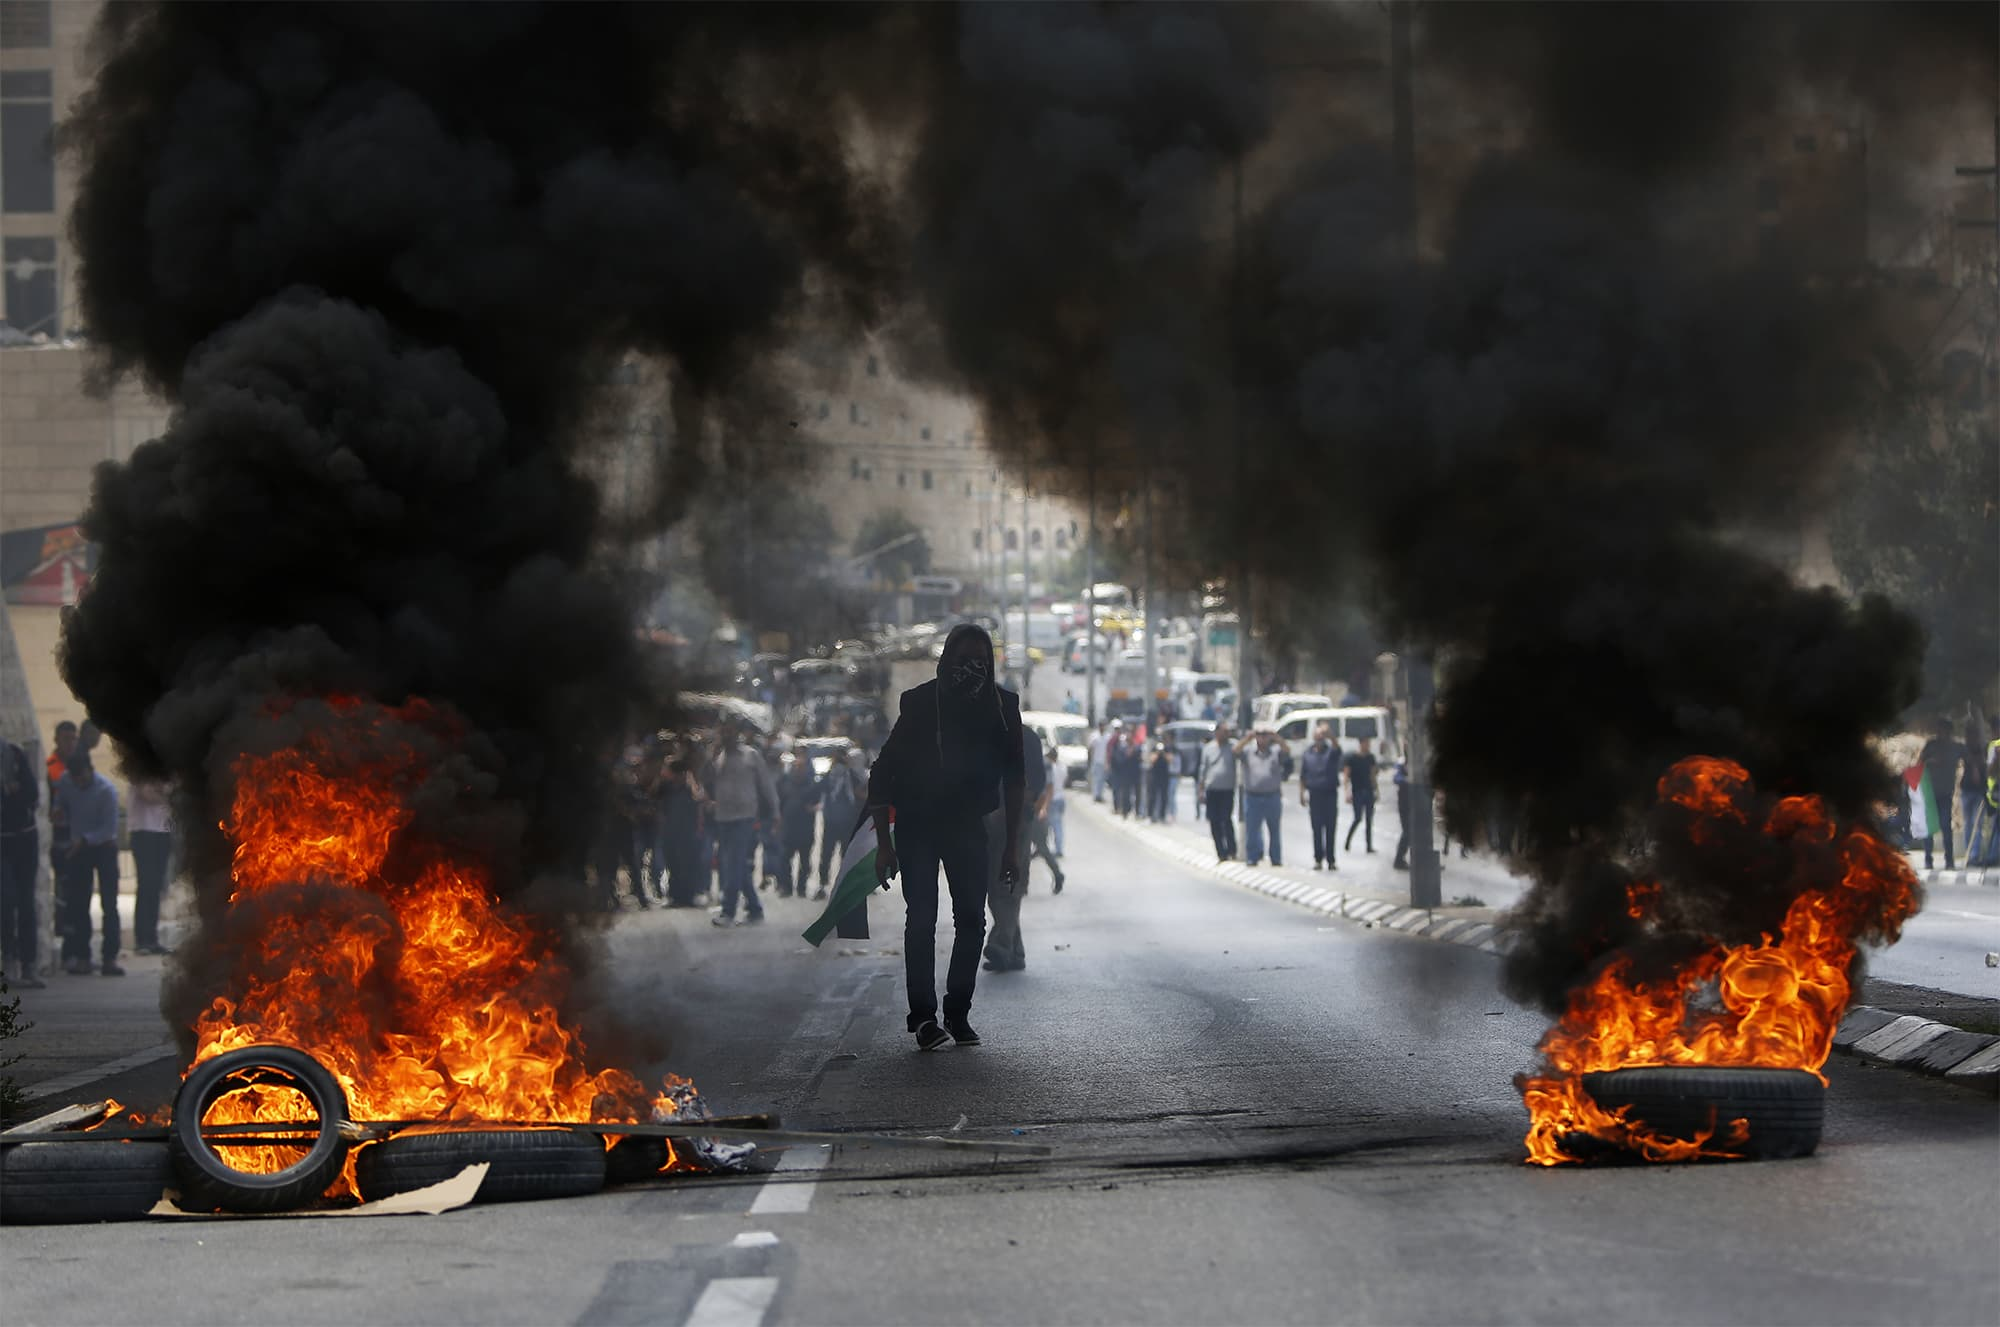 Palestinians clash with Israeli troops following a protest against the US decision to relocate it's Israeli embassy to Jerusalem, in the West Bank city of Bethlehem on Monday, May 14, 2018. ─ AP